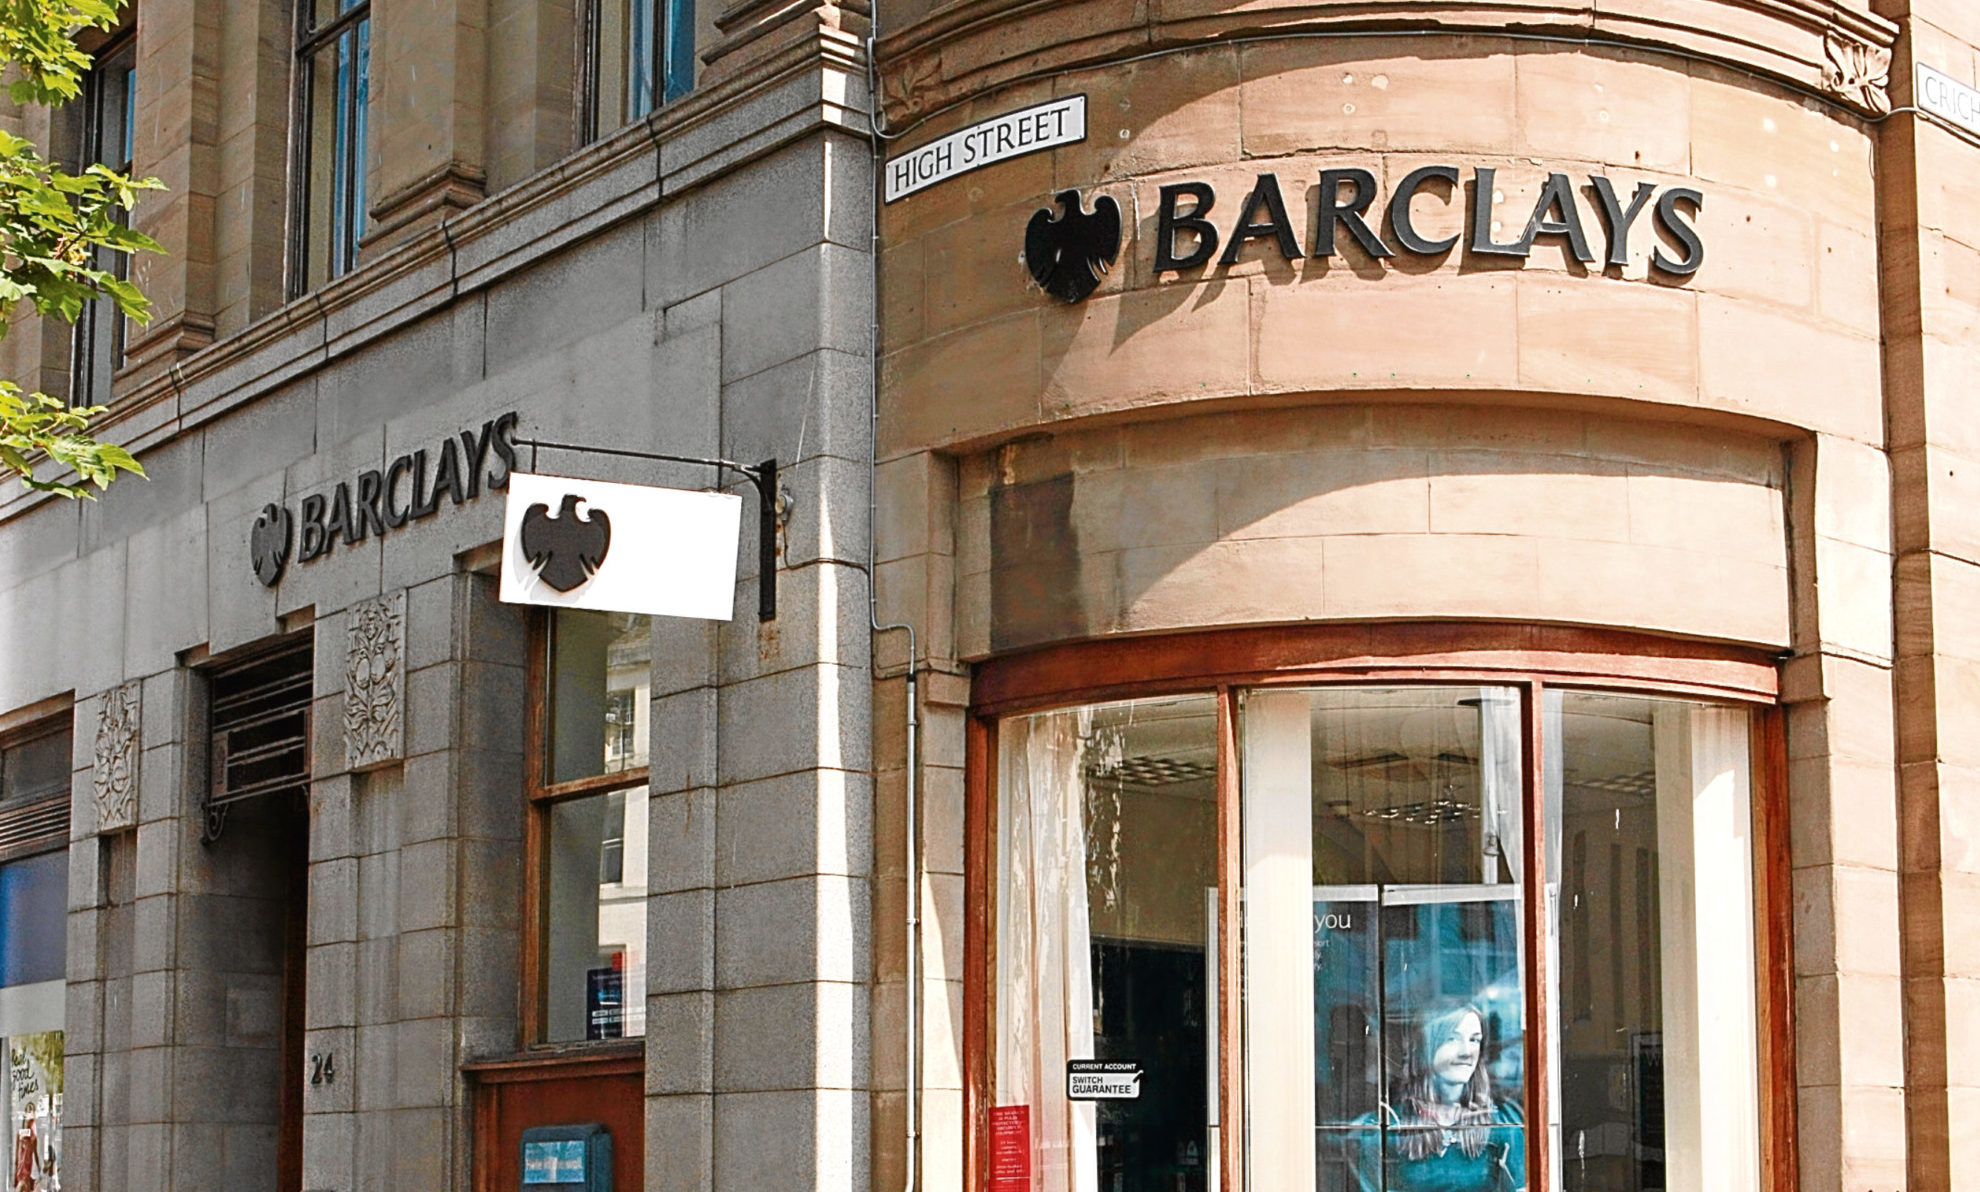 Barclays Bank, at the corner of High Street and Crichton Street, Dundee